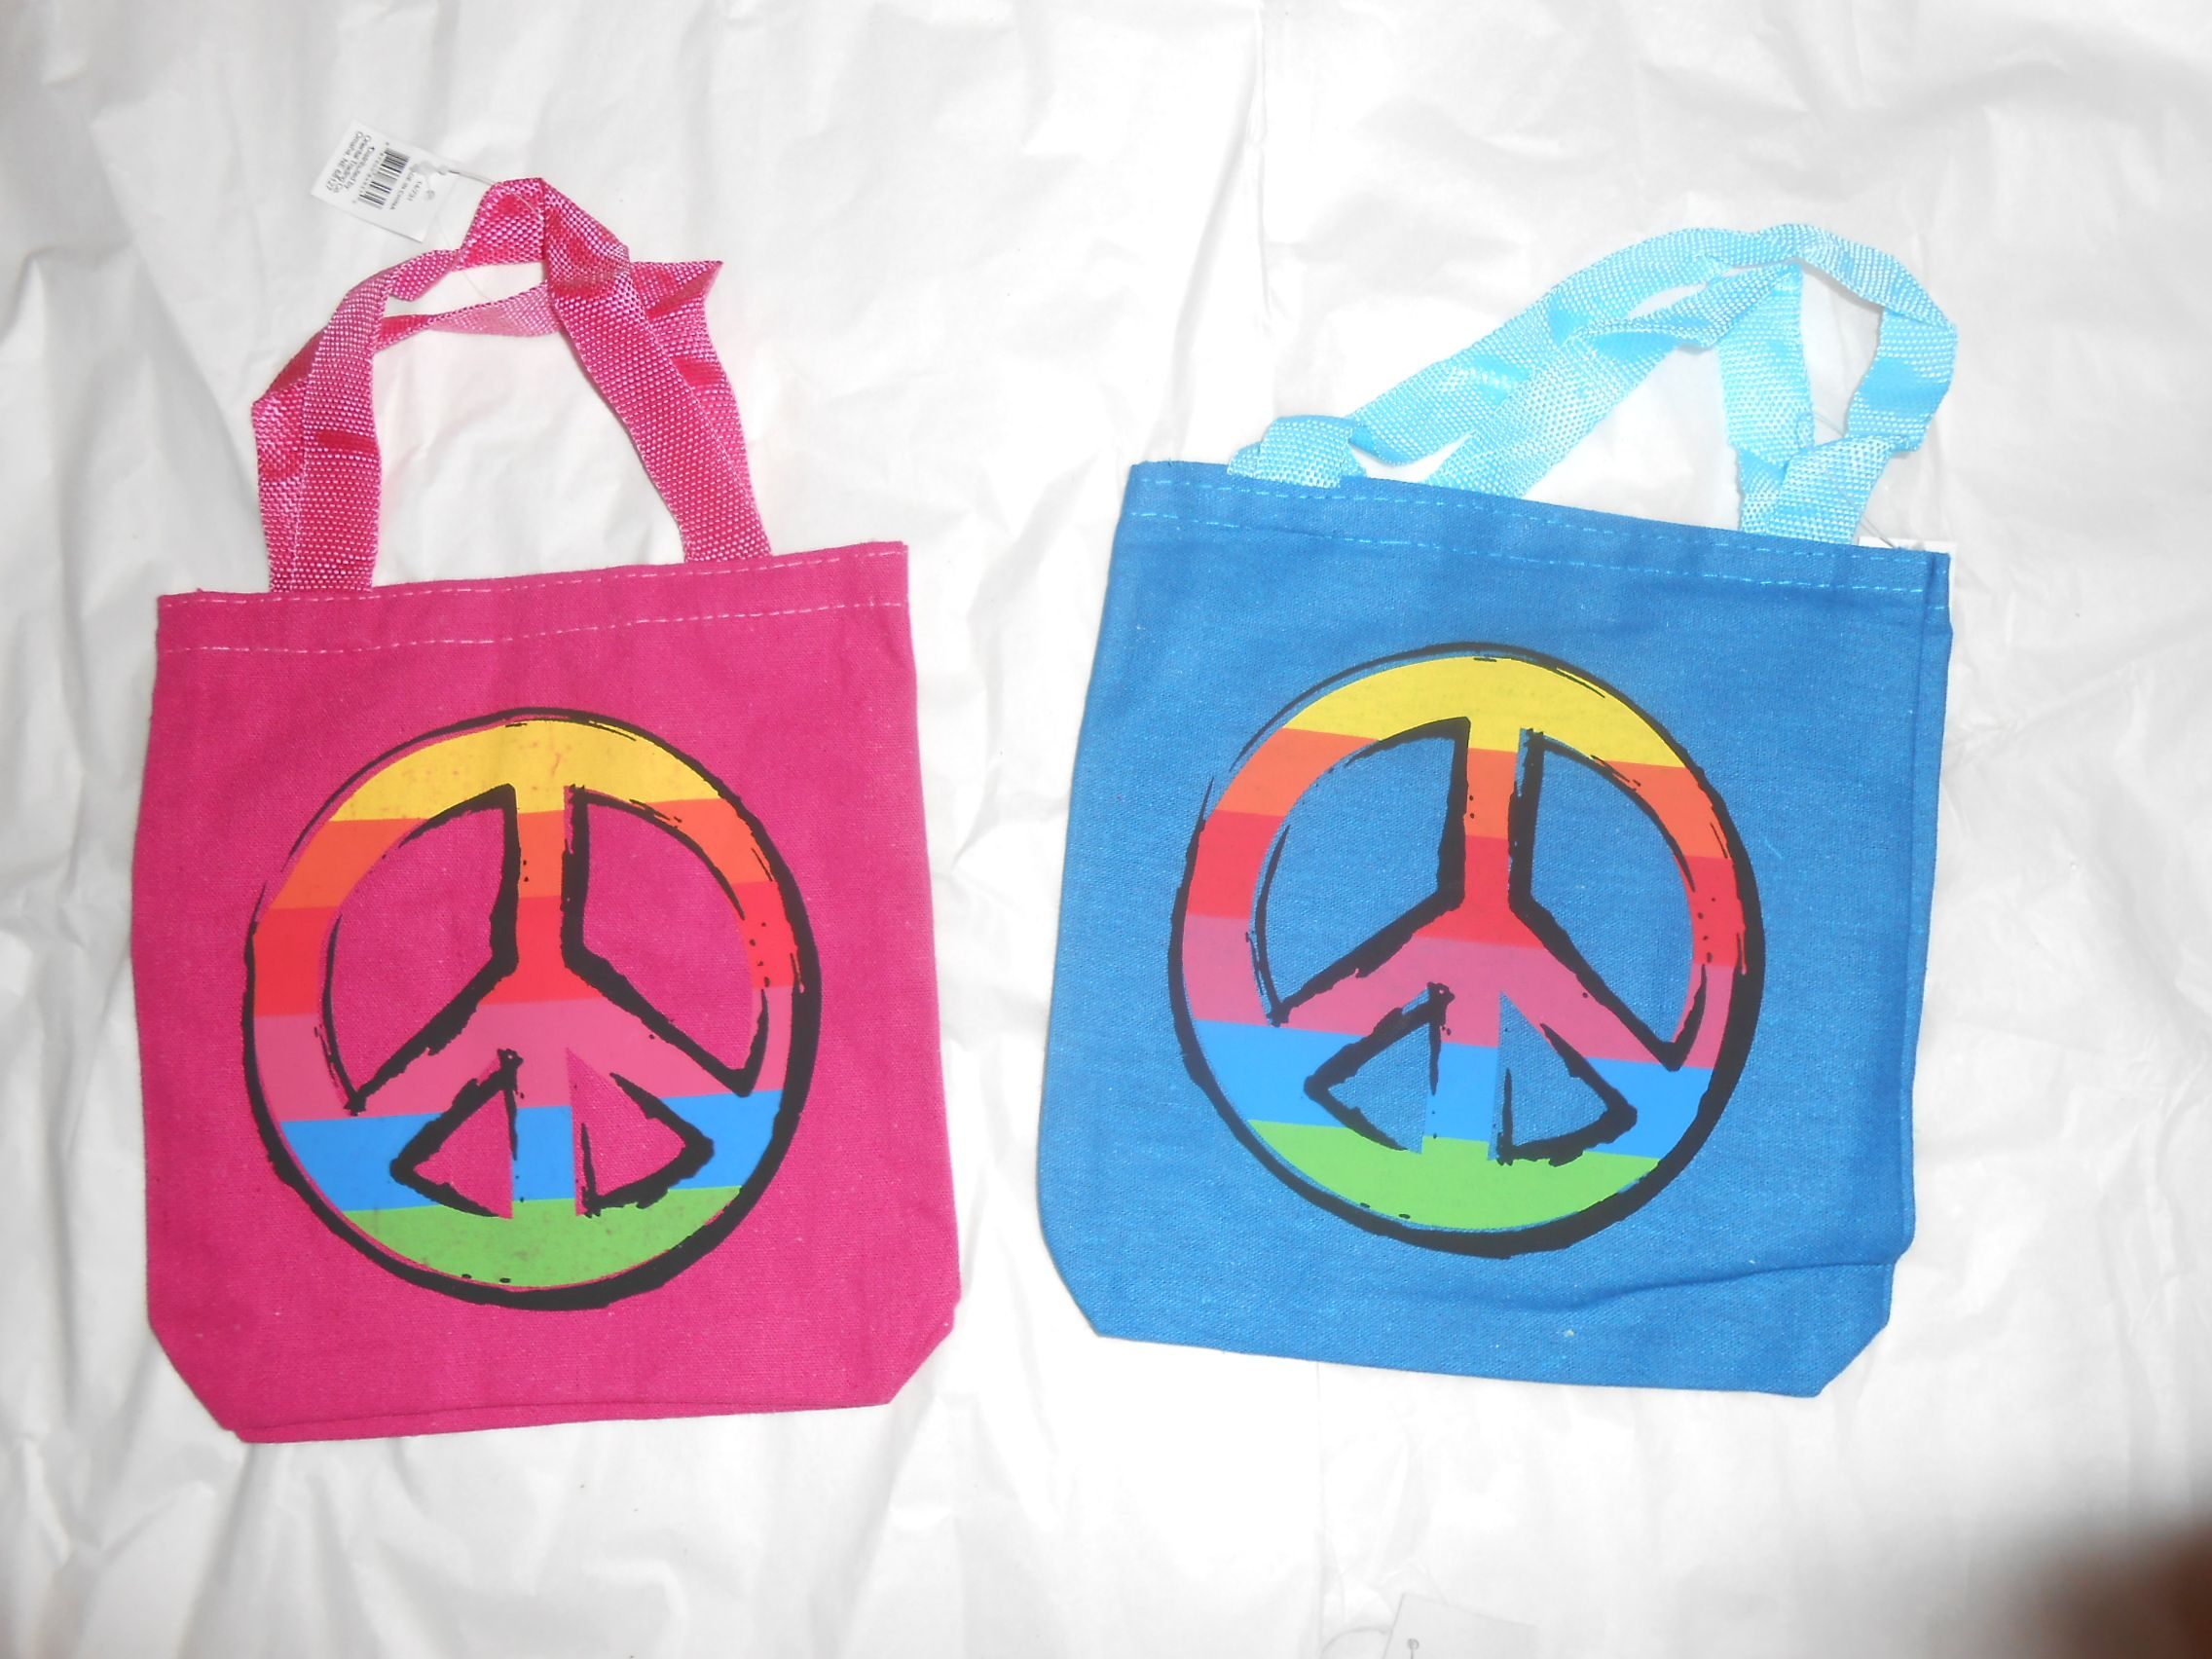 Peace Sign Wallpaper For Bedroom Peace Sign Backgrounds Wallpaper Downloads Easy Being Green